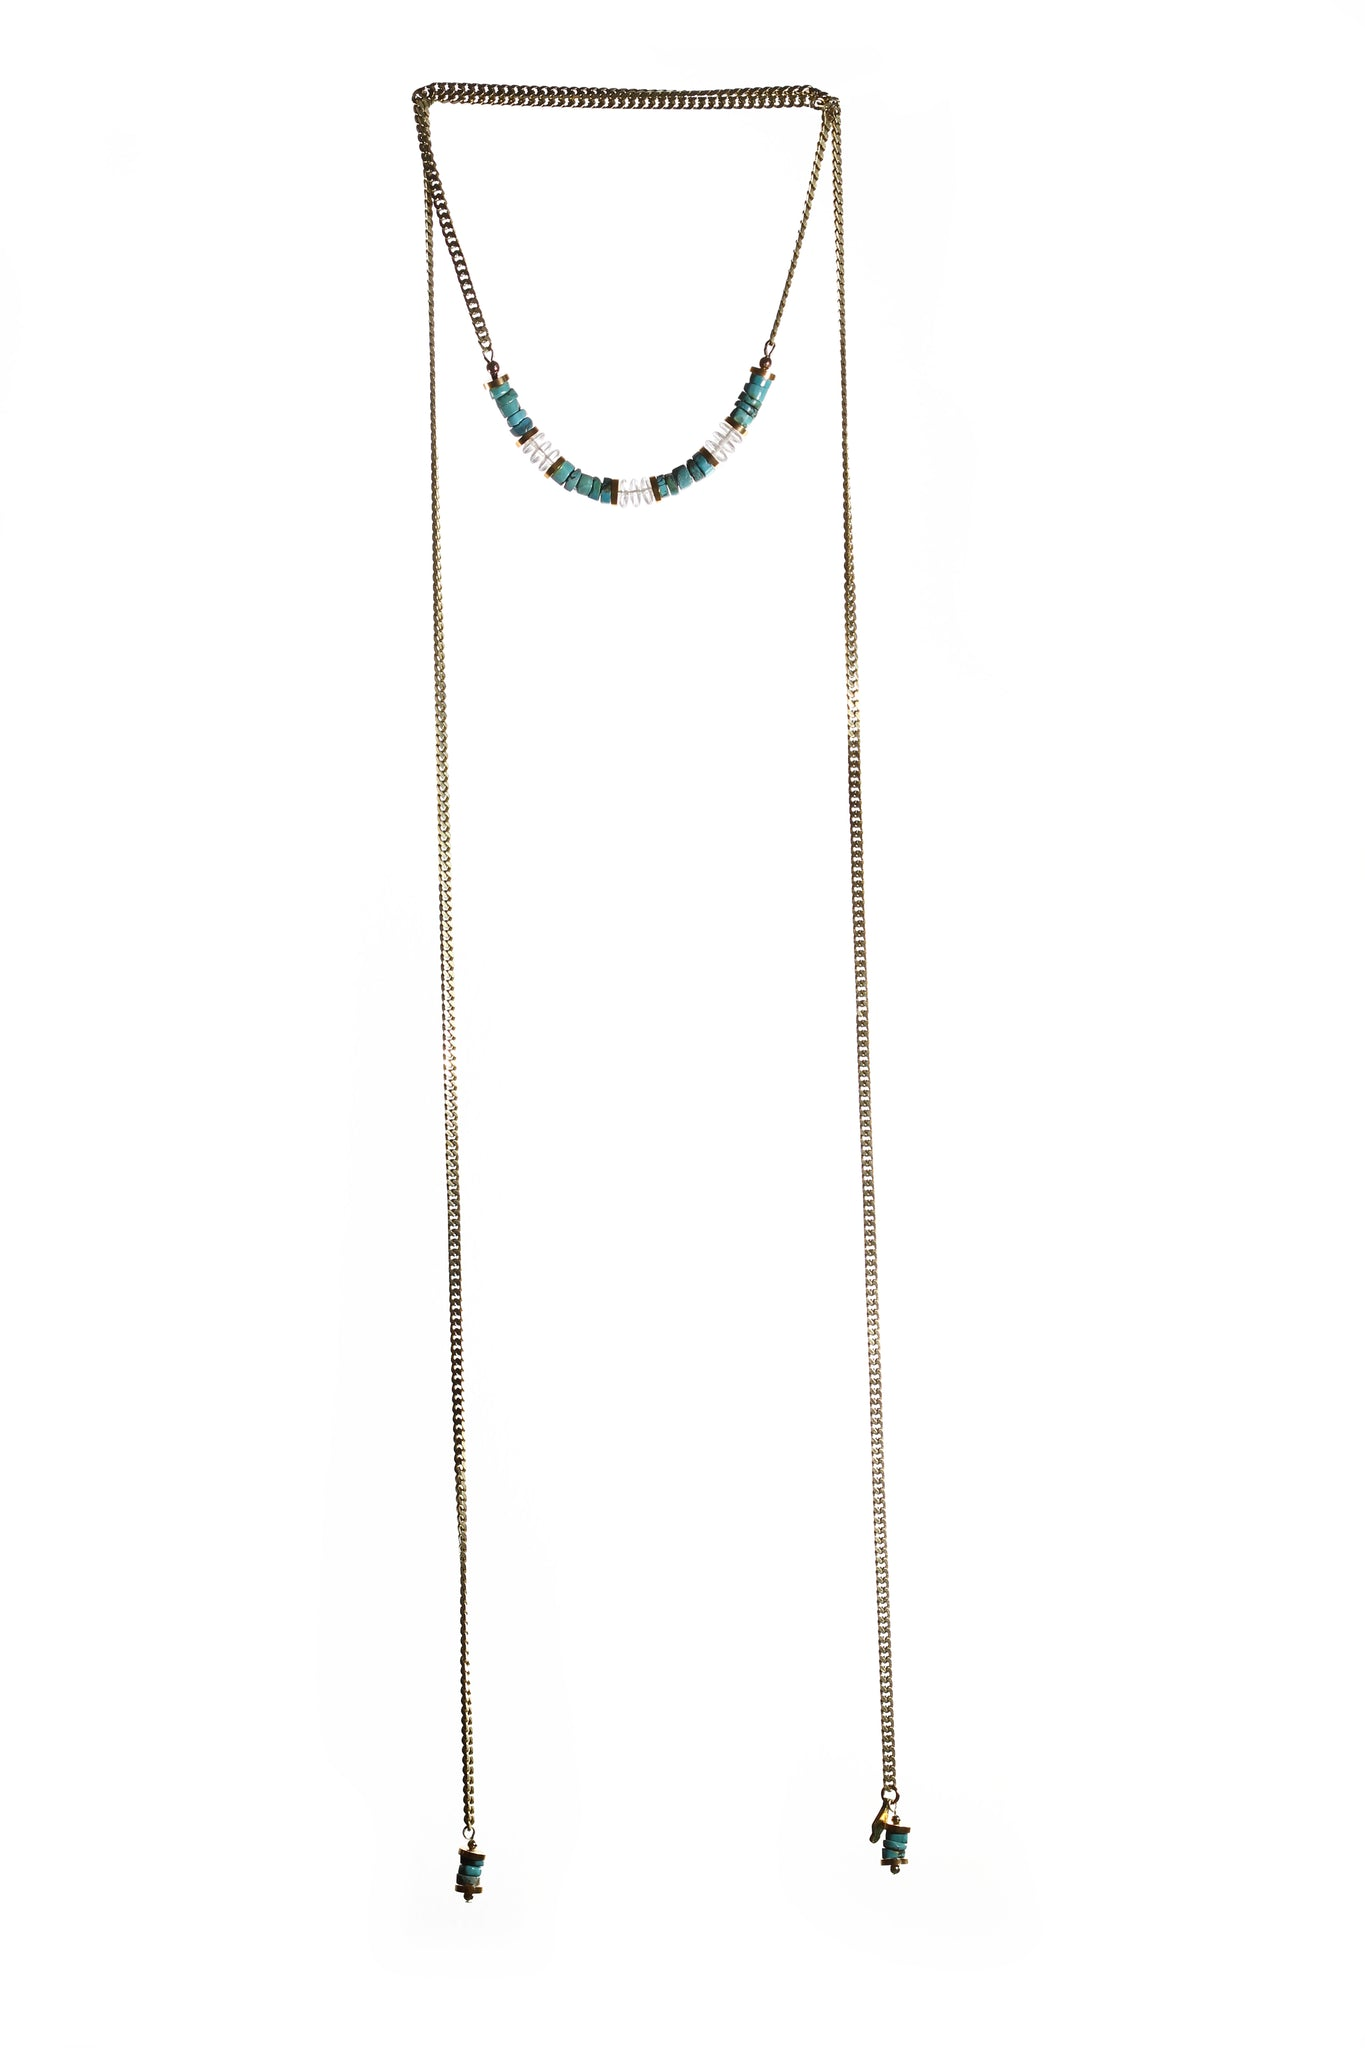 Canadian hand made boho style turquoise long necklace